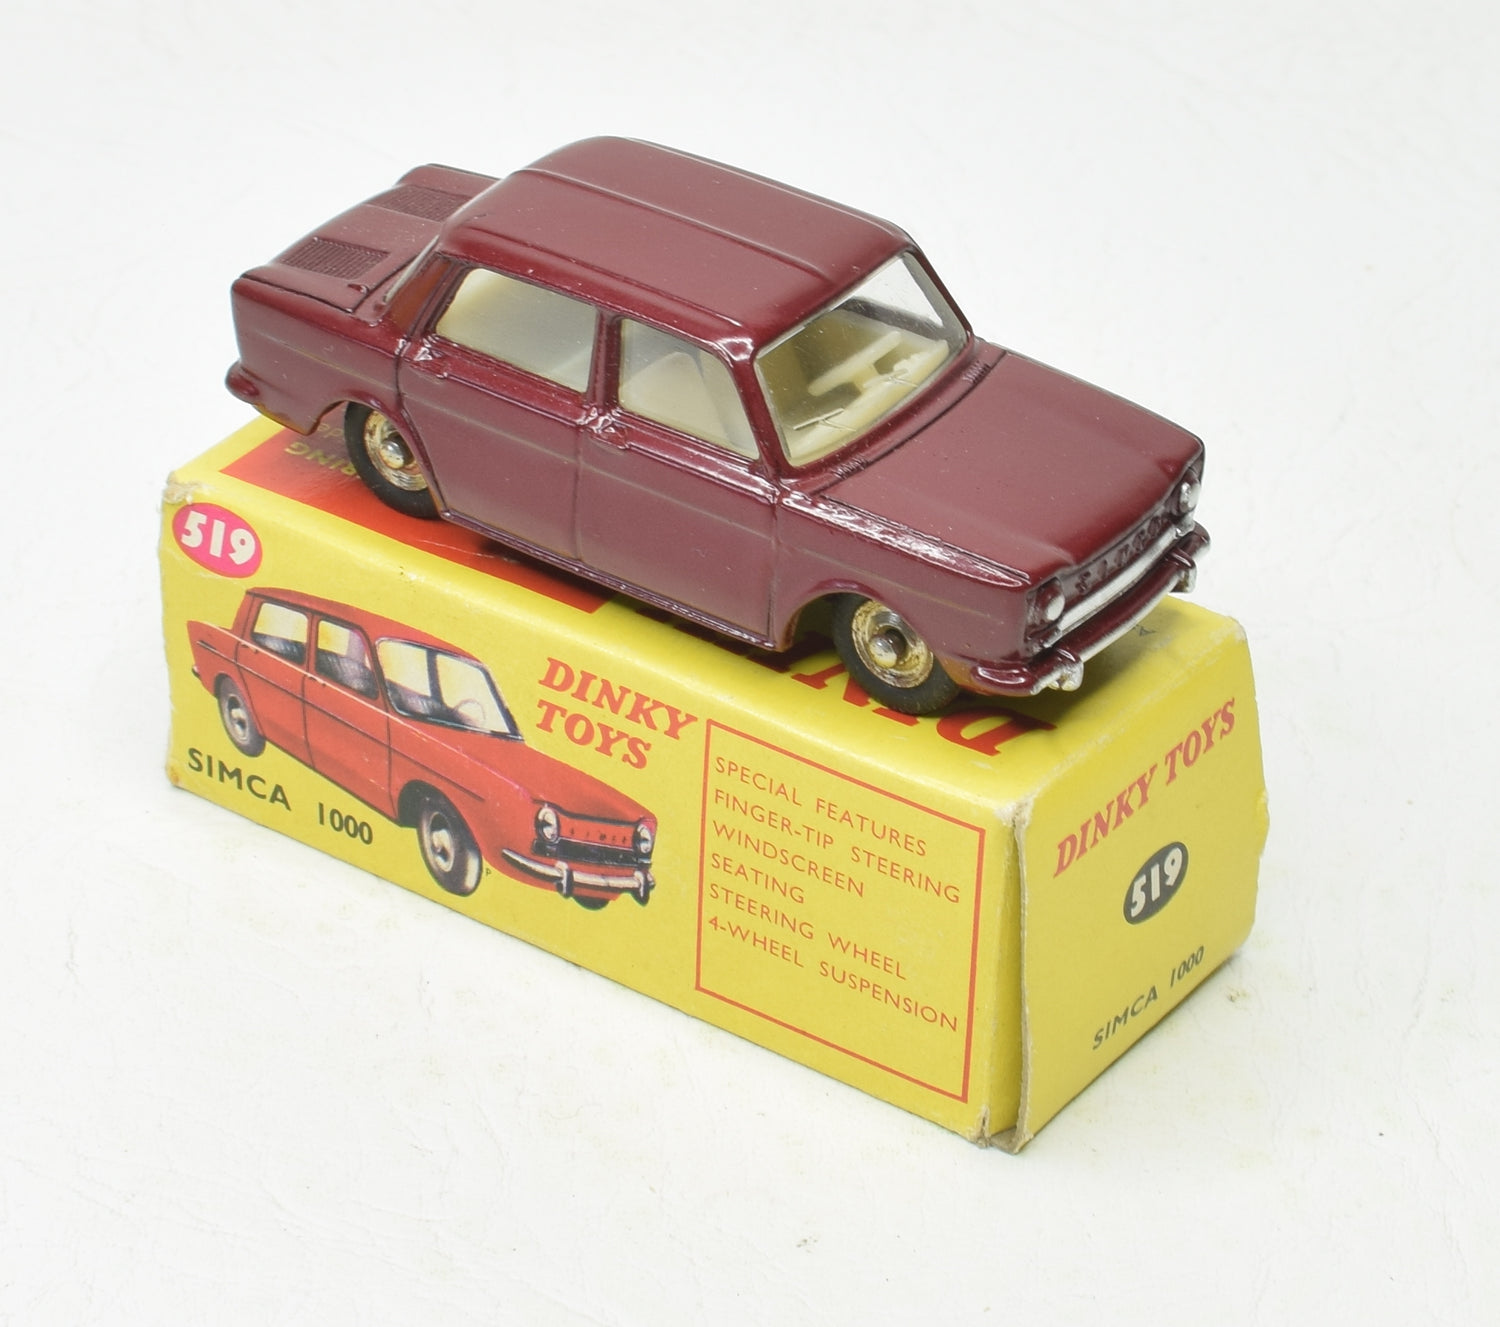 French Dinky Toys 519 Simca 1000 'South African' Very Near Mint/Boxed 'Brecon' Collection